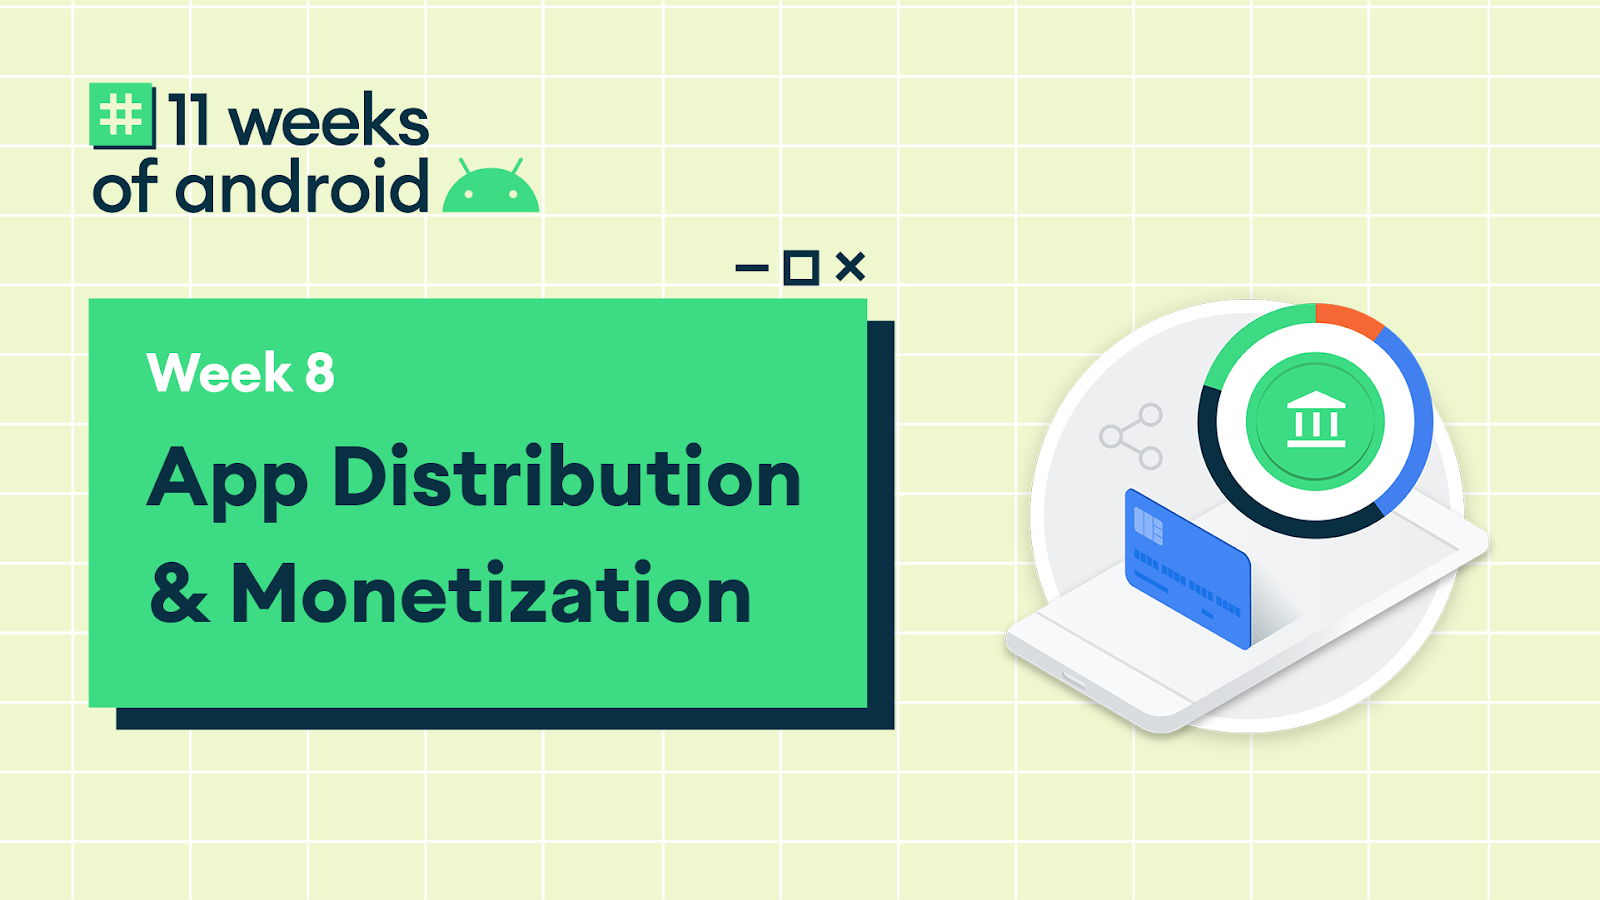 11 Weeks of Android Week 8 App Distribution & Monetization